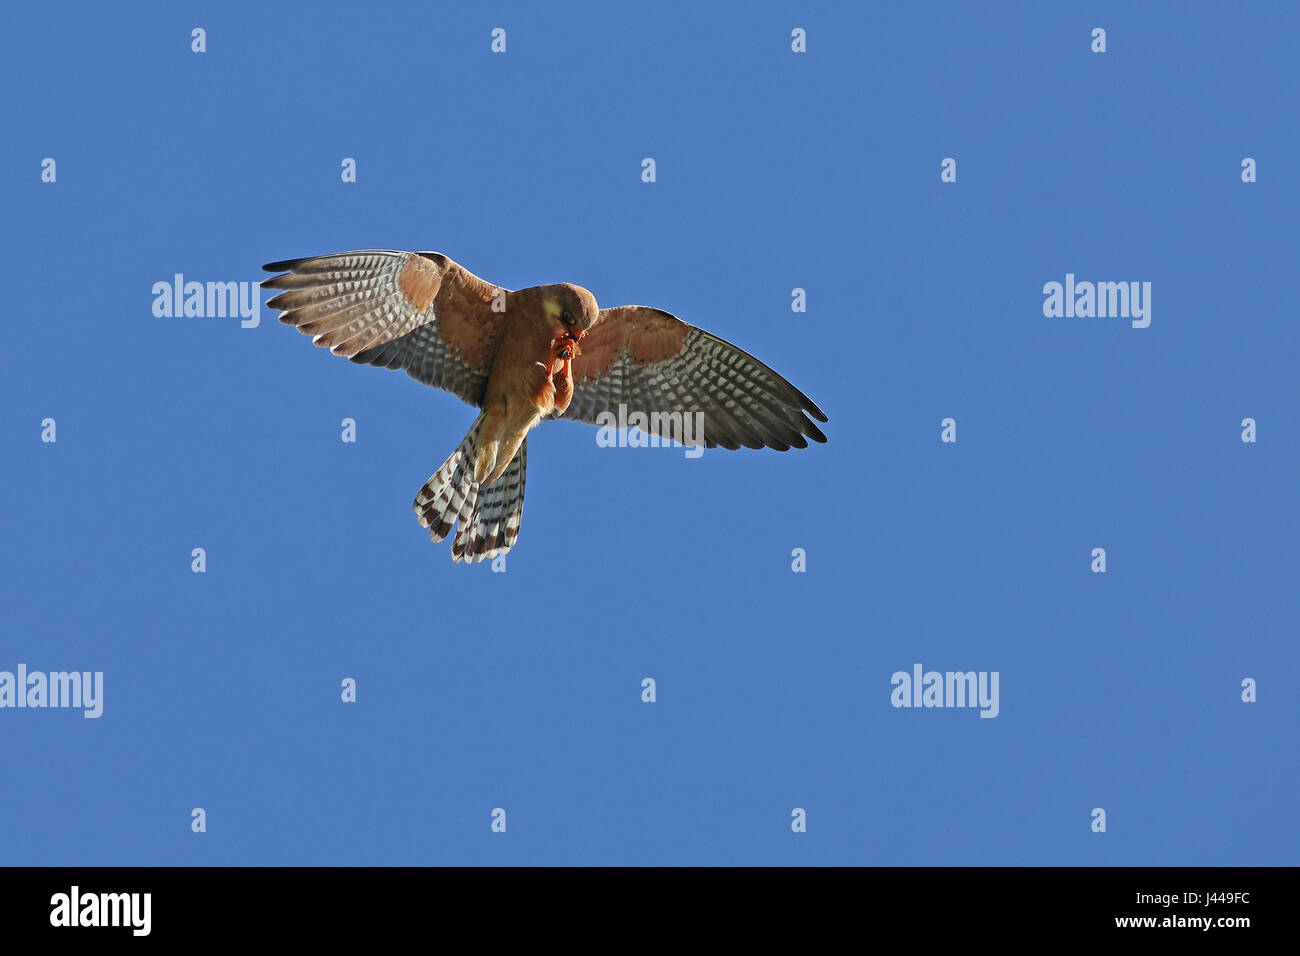 Female red-footed falcon, Falco Vespertinus, in flight clutching its prey - Stock Image